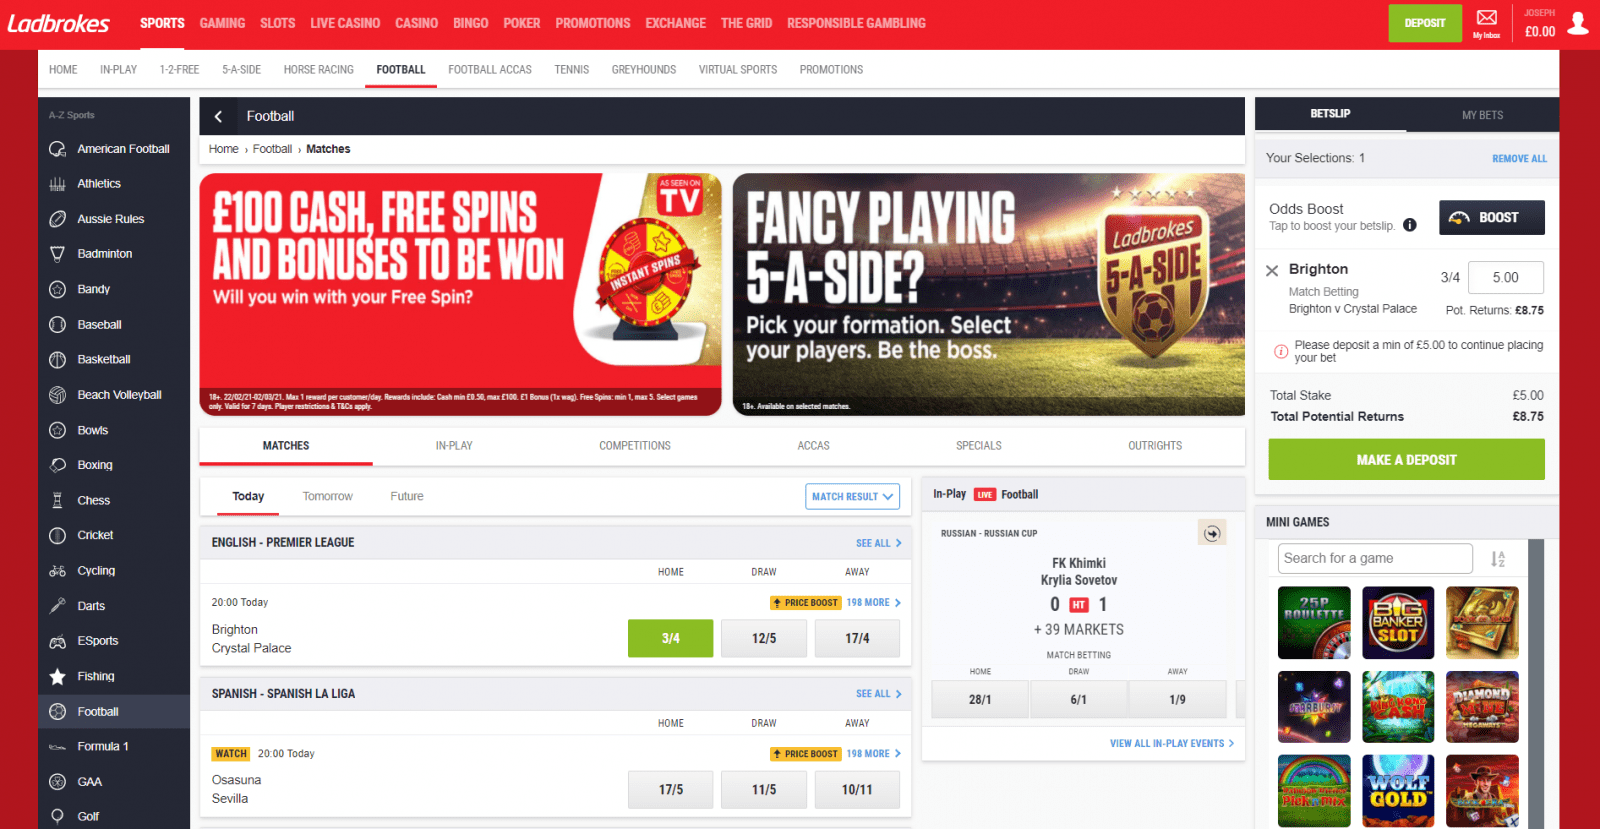 Ladbrokes free bet - bet placement